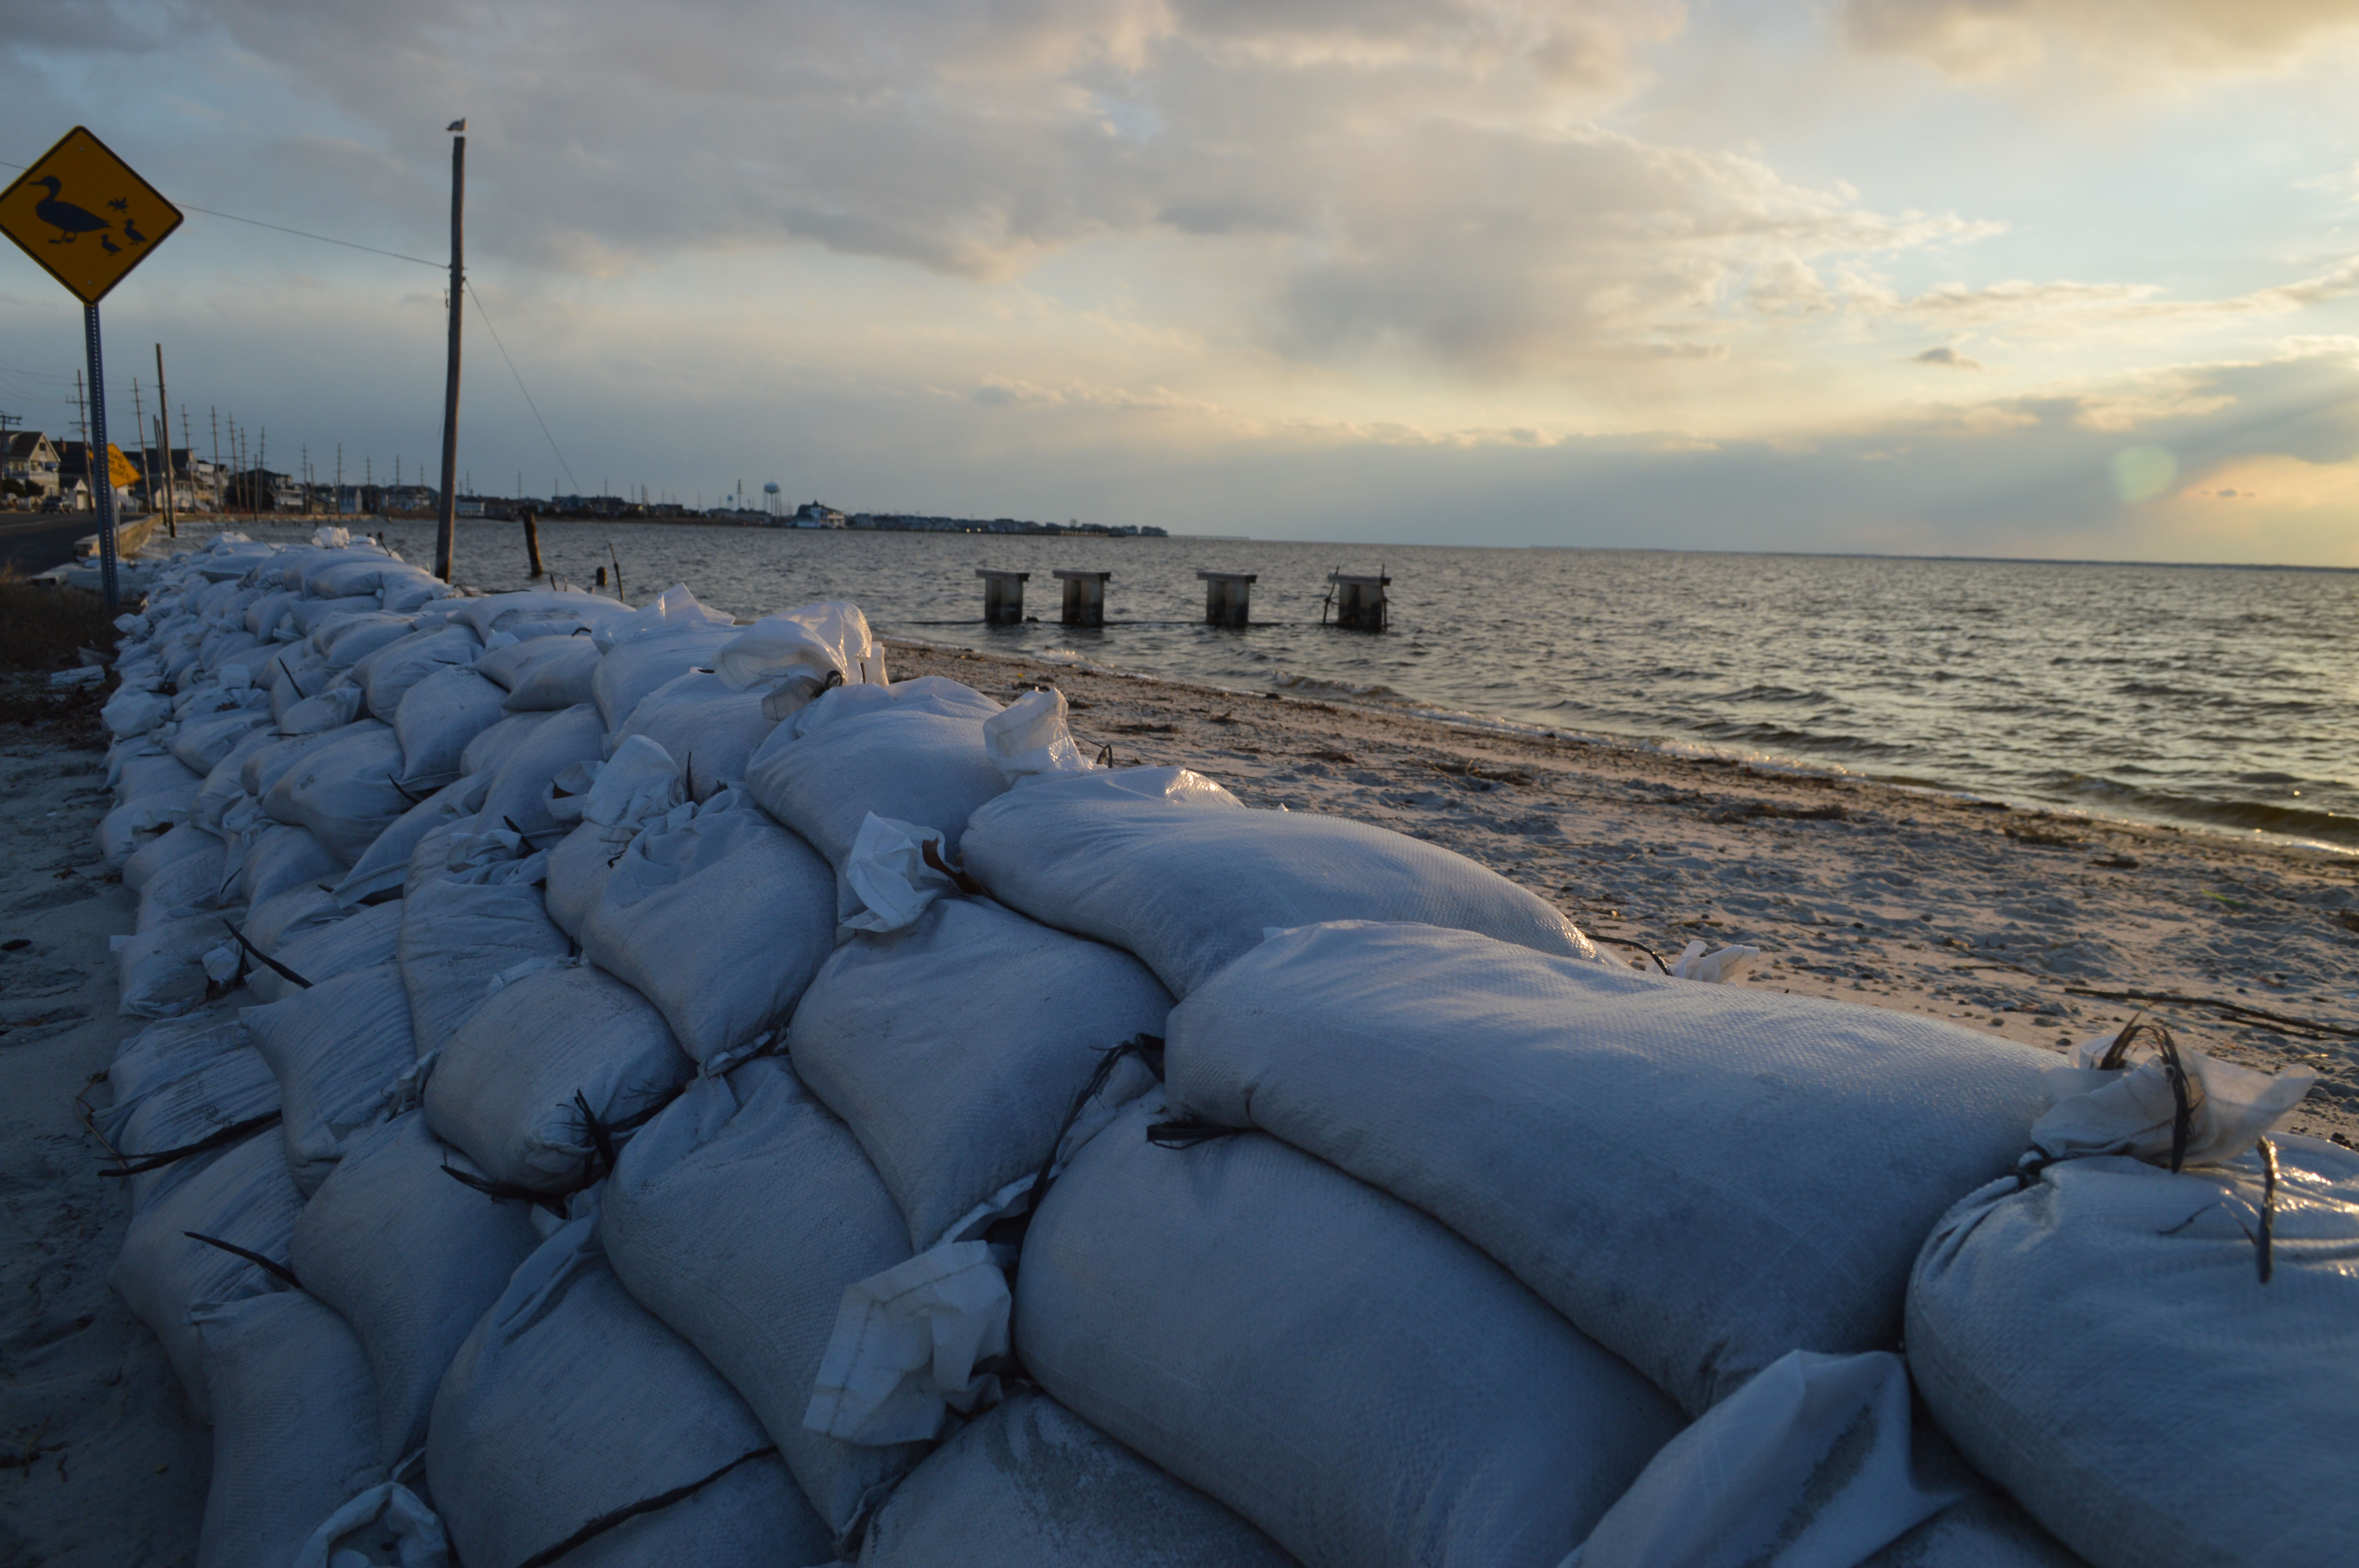 Sandbags positioned along North Bayview Avenue in Seaside Park, Jan. 20, 2017. (Photo: Daniel Nee)